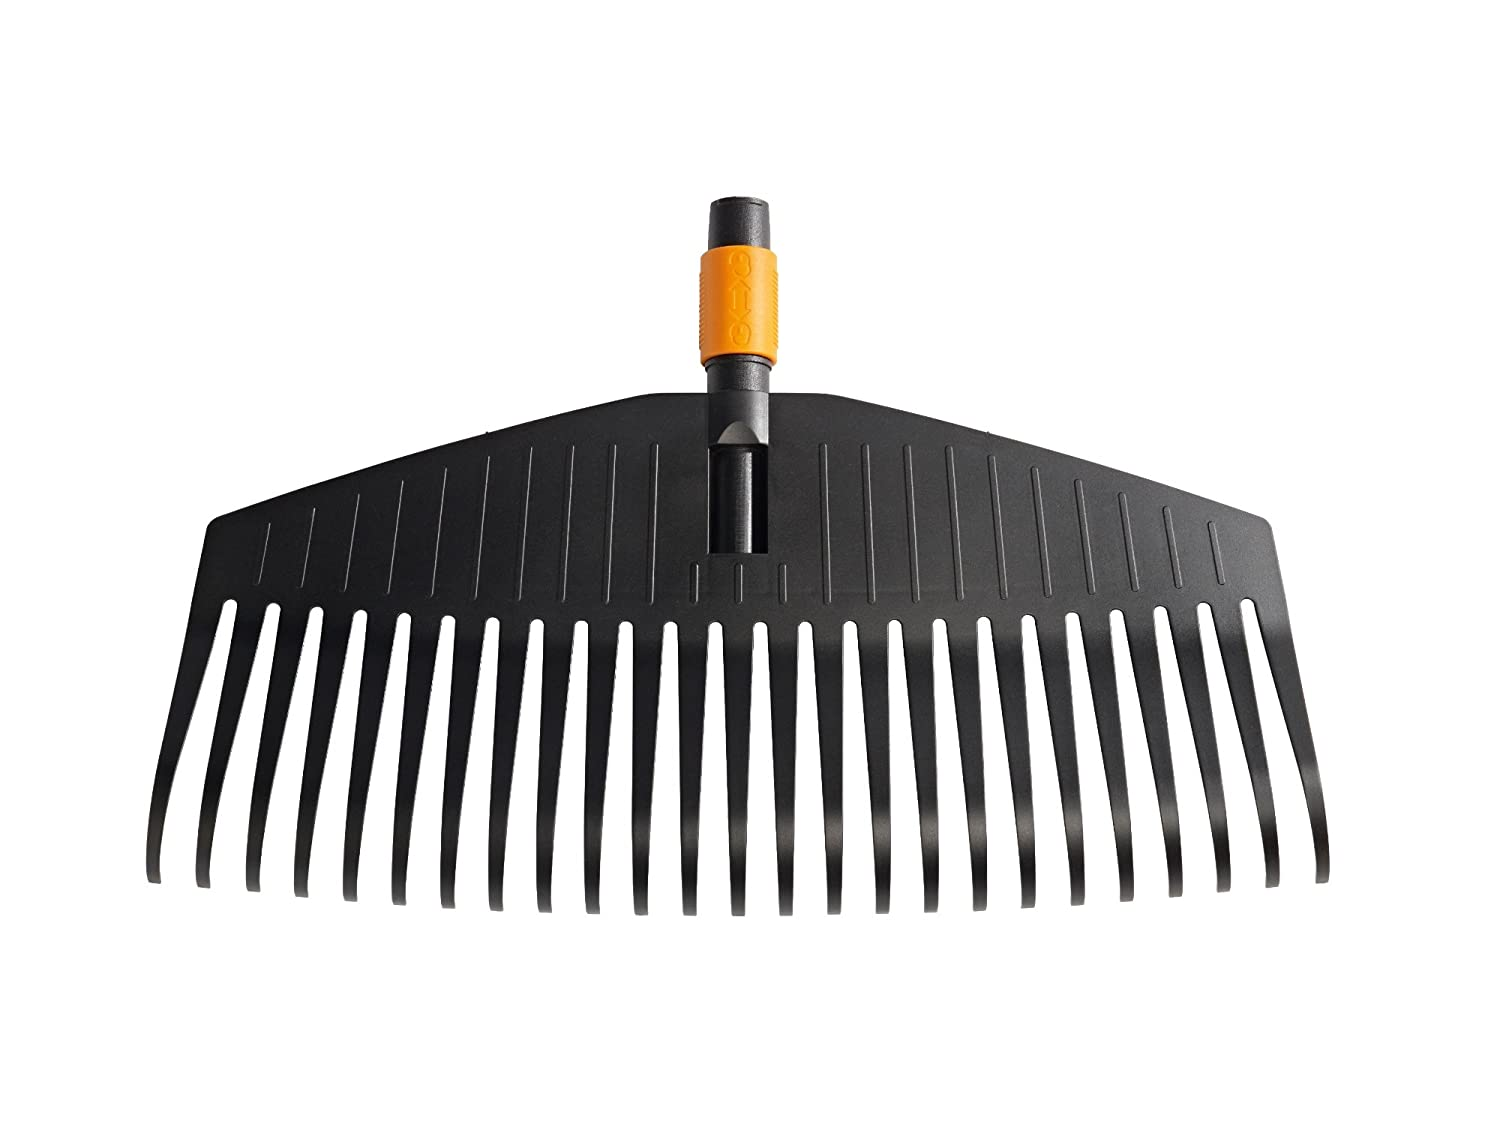 Fiskars QuikFit Leaf Rake S, Tool head, 11 prongs, Length: 21.3 cm, Plastic Prongs, Black/Orange, 1000659 Fiskars (outdoor) UK Ltd 135551 Draper Leaf Rake Faithfull Leaf Rake